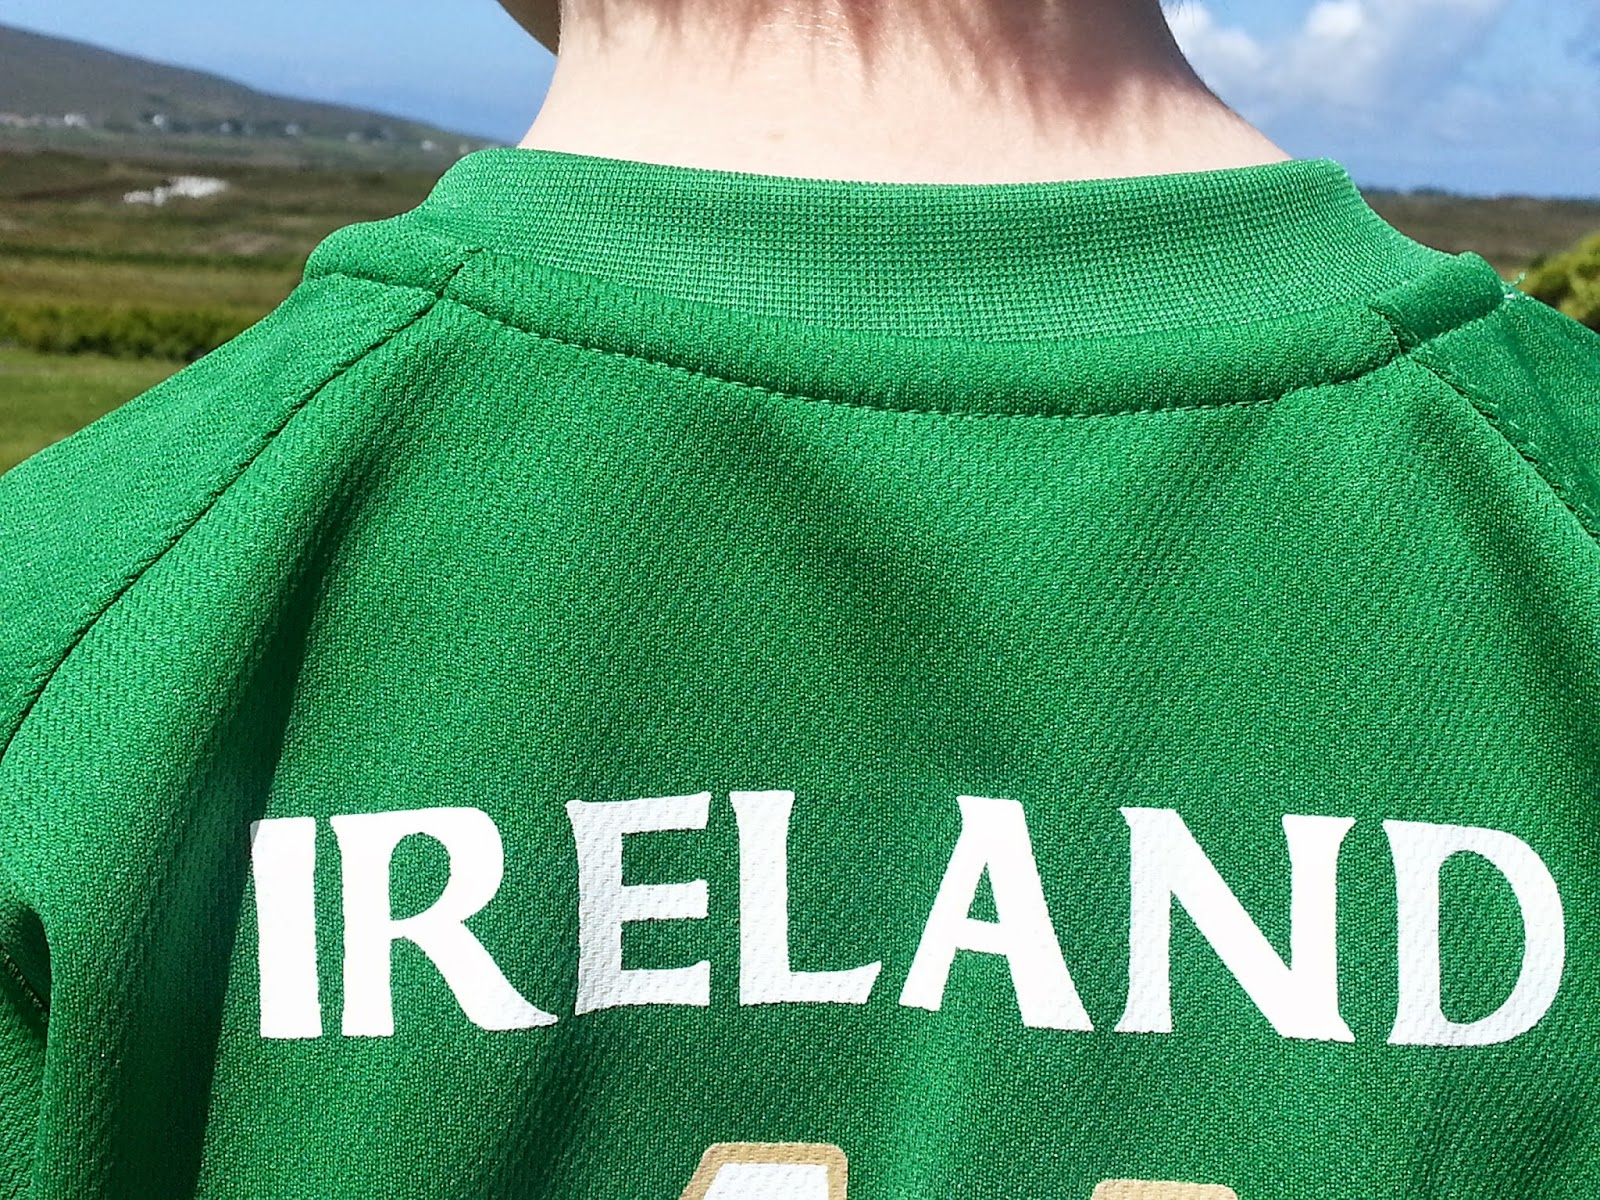 The word Ireland on back of soccer jersey